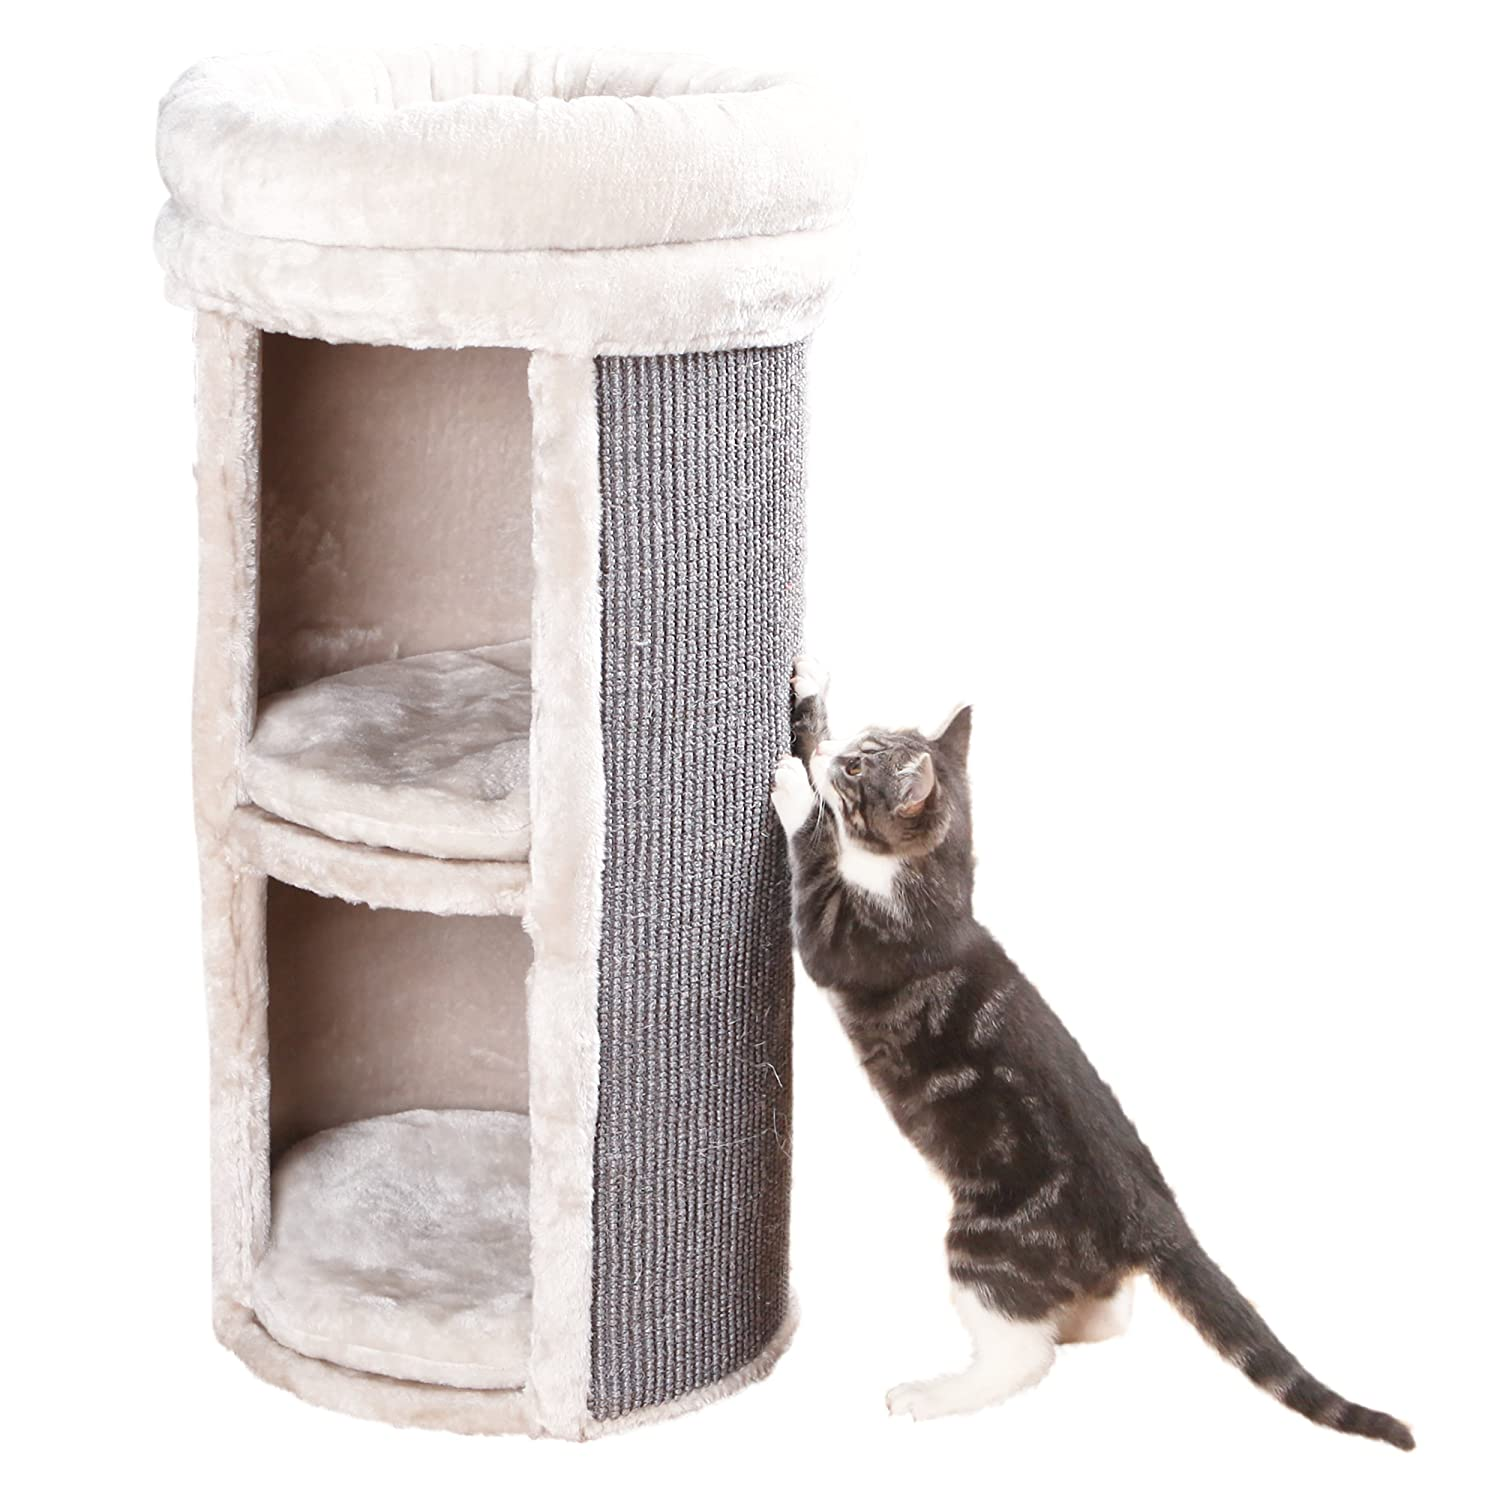 amazoncom trixie pet products mexia 2story cat tower gray pet supplies